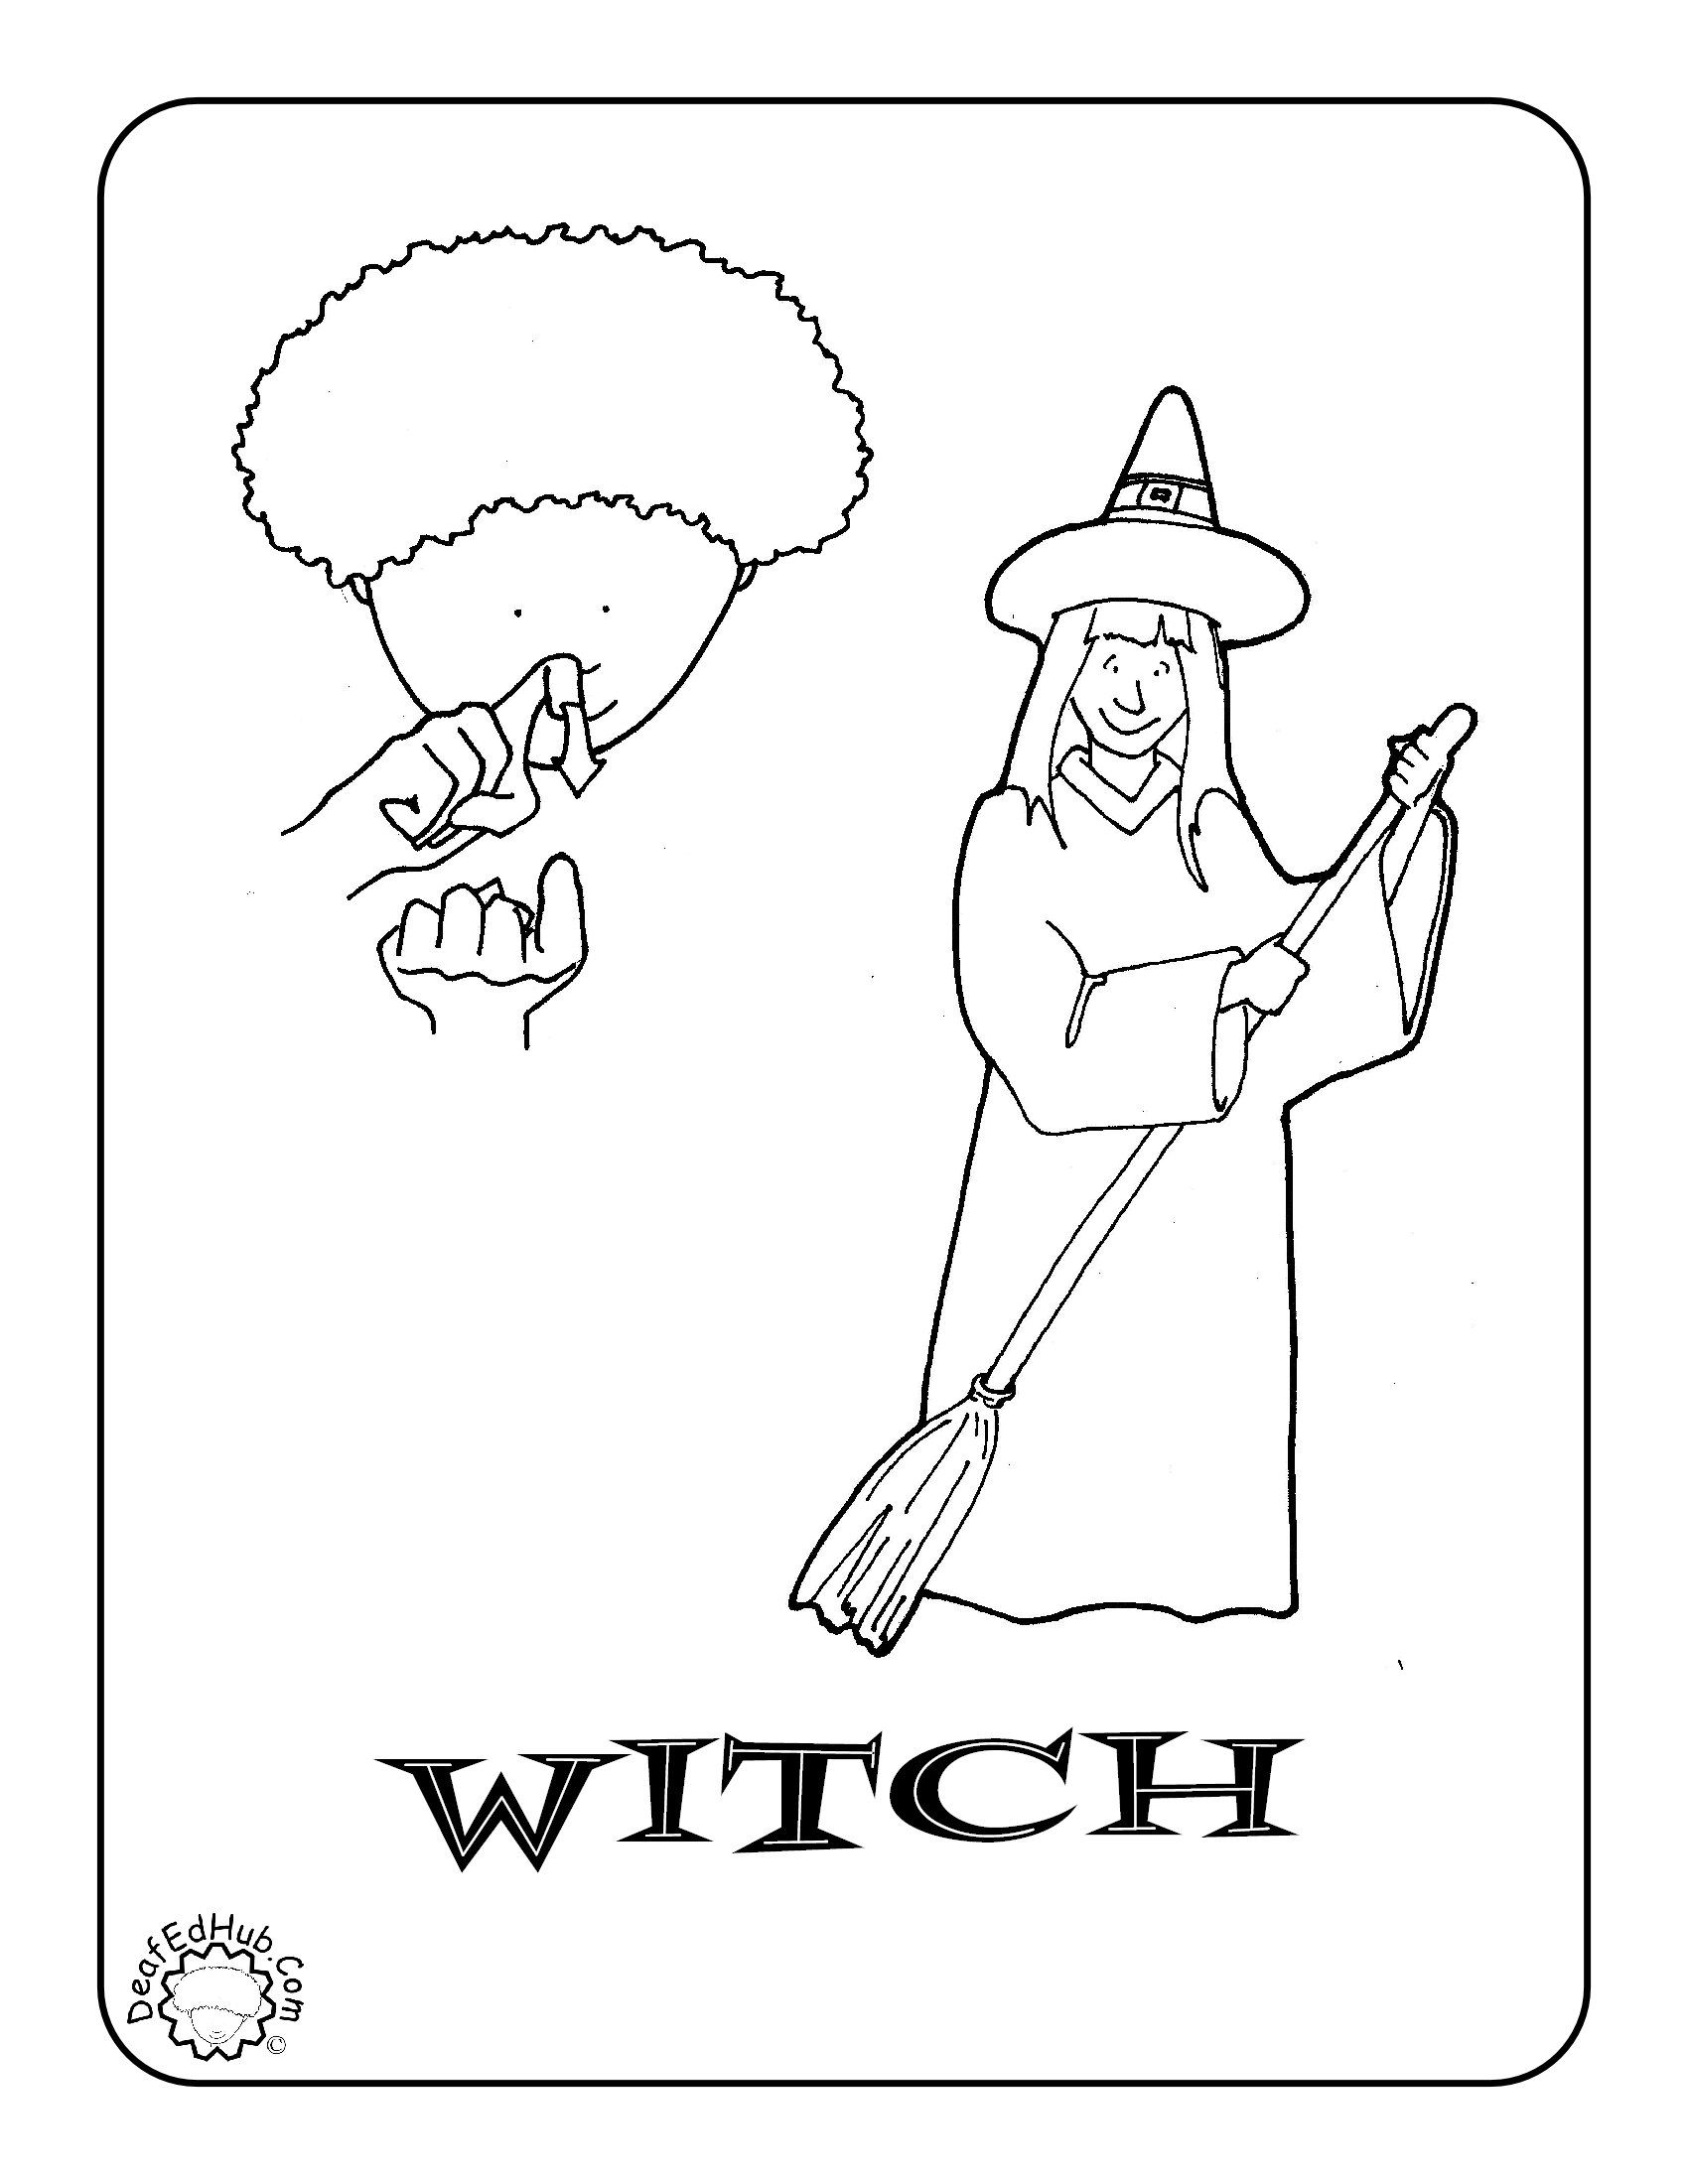 Coloring Pages Asl Coloring Pages asl coloring page for the sign horse i just posted 19 more witch page